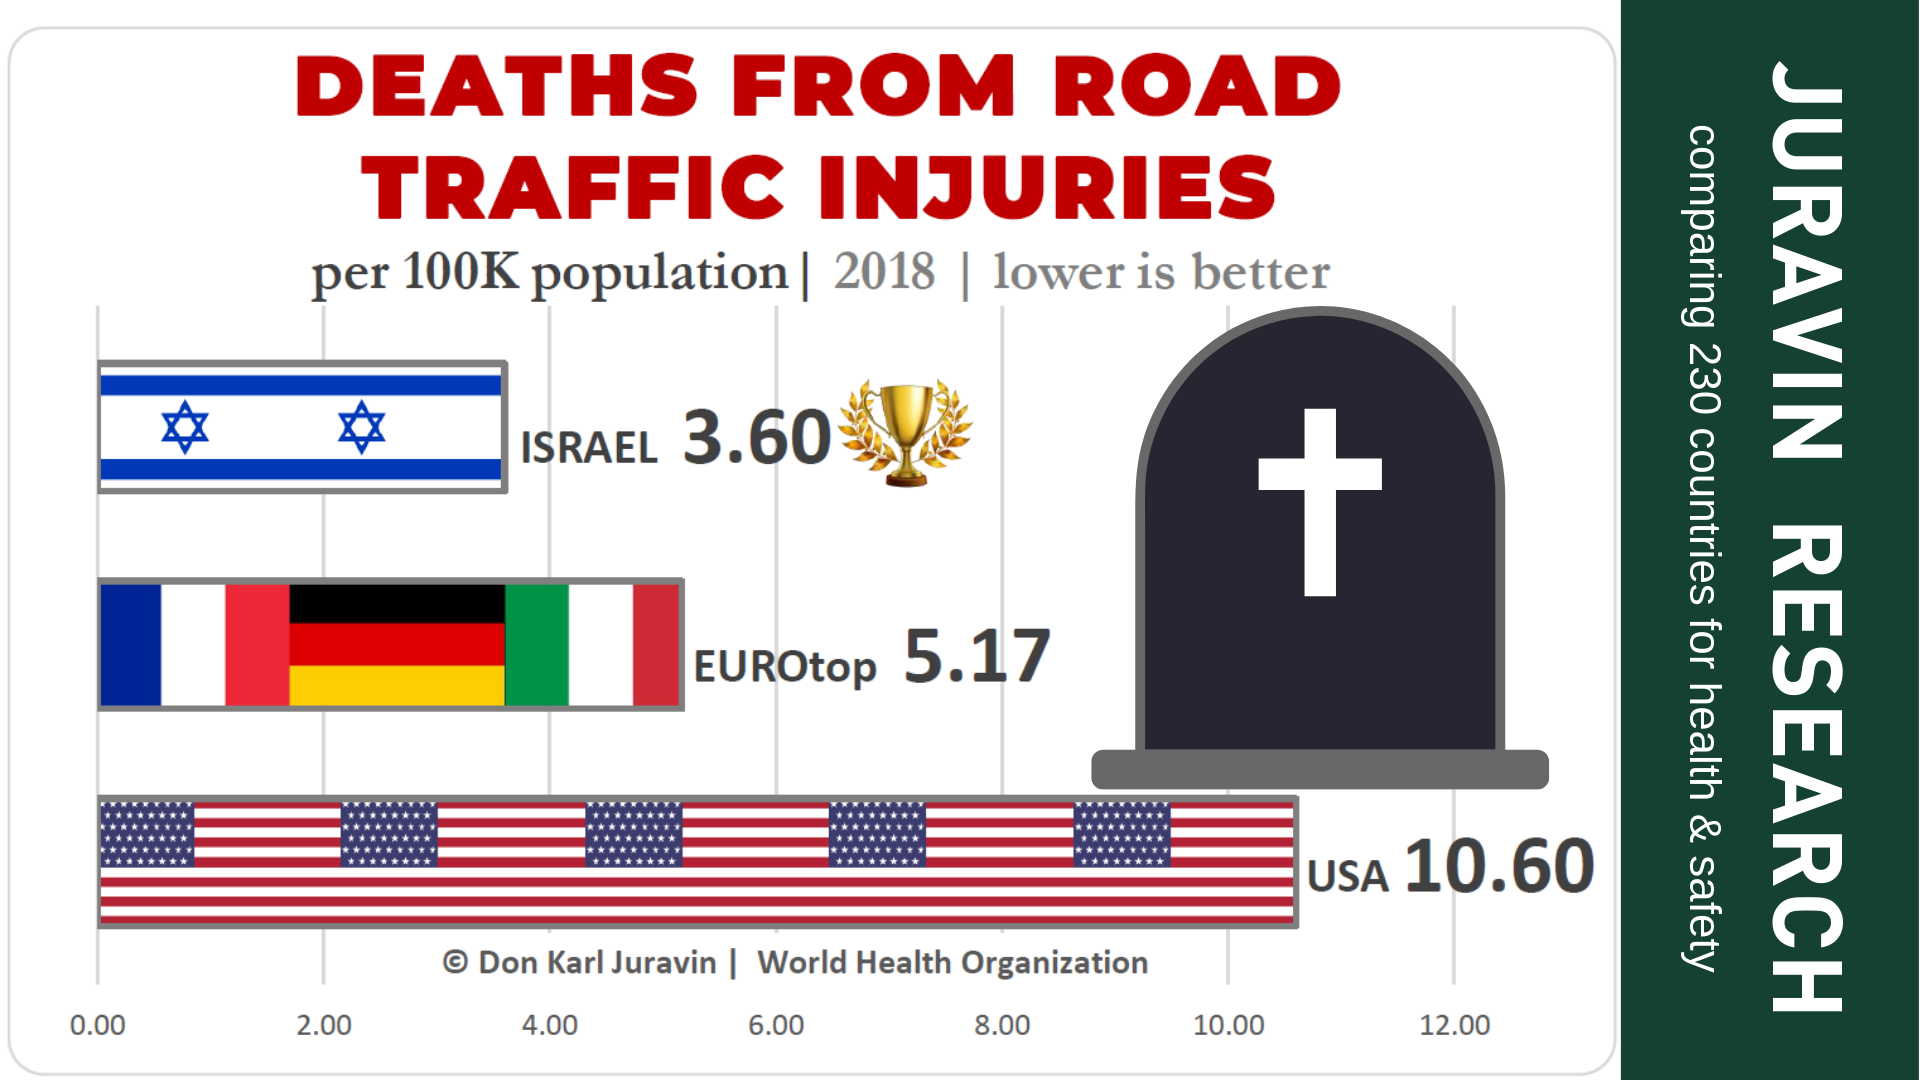 CAR ACCIDENTS – LATEST STATISTICS COMPARING 230 COUNTRIES